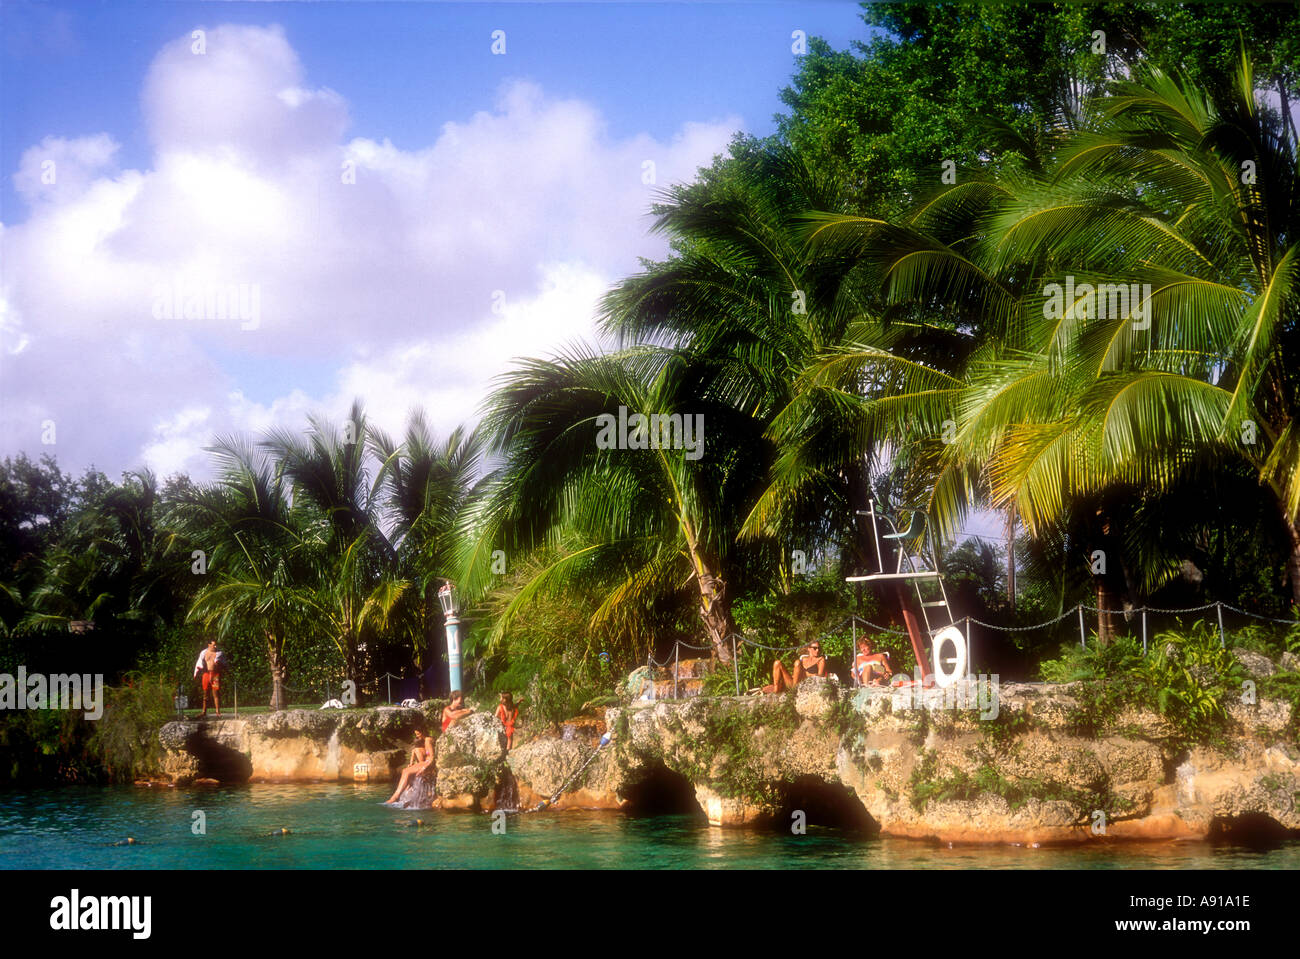 The Venetian Pool at Coral Gables Miami Florida USA - Stock Image